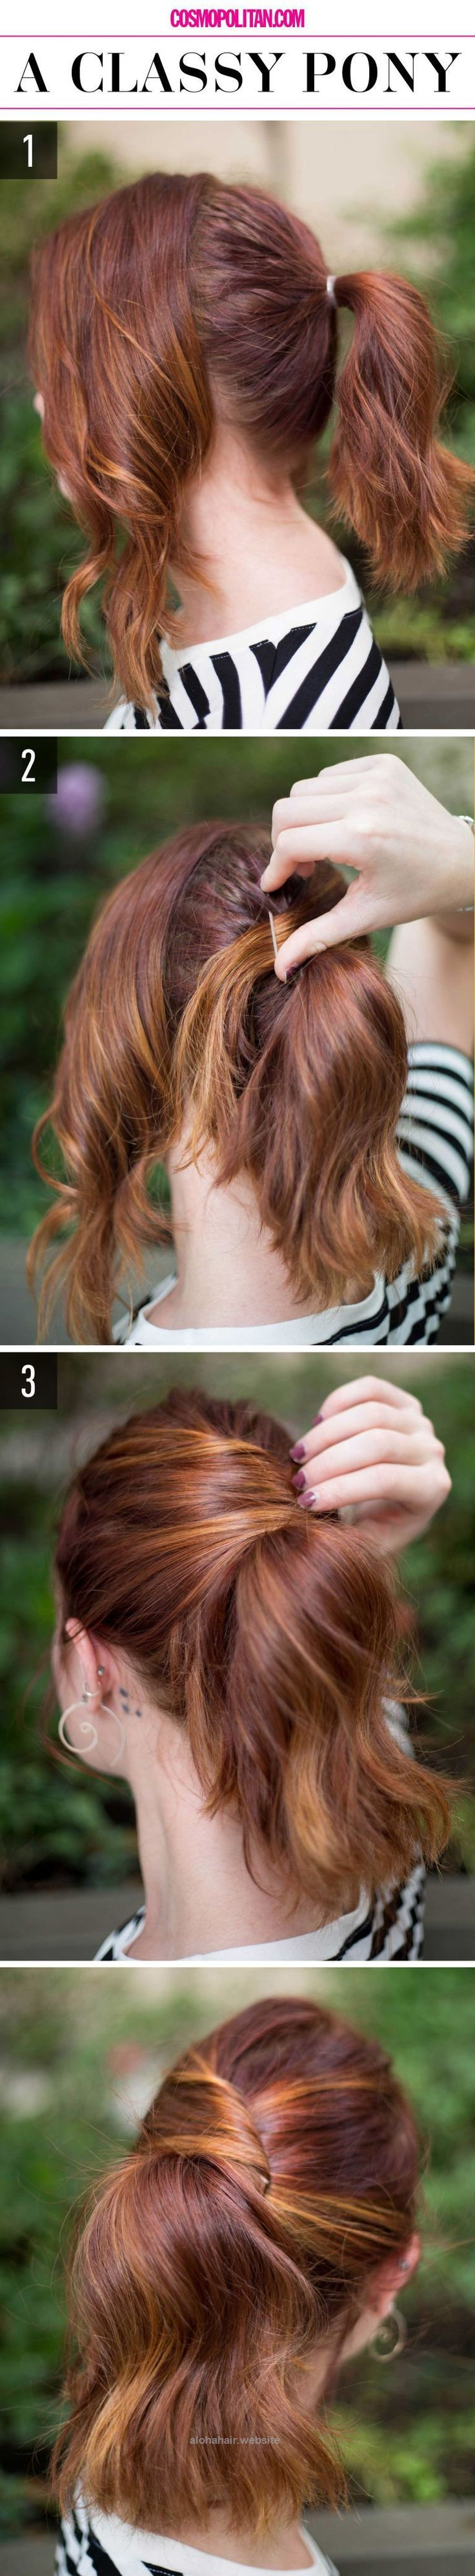 Adorable Looks so doable you can master them in two to three steps.  The post  Looks so doable you can master them in two to three steps….  appeared first on  Aloha Haircuts .